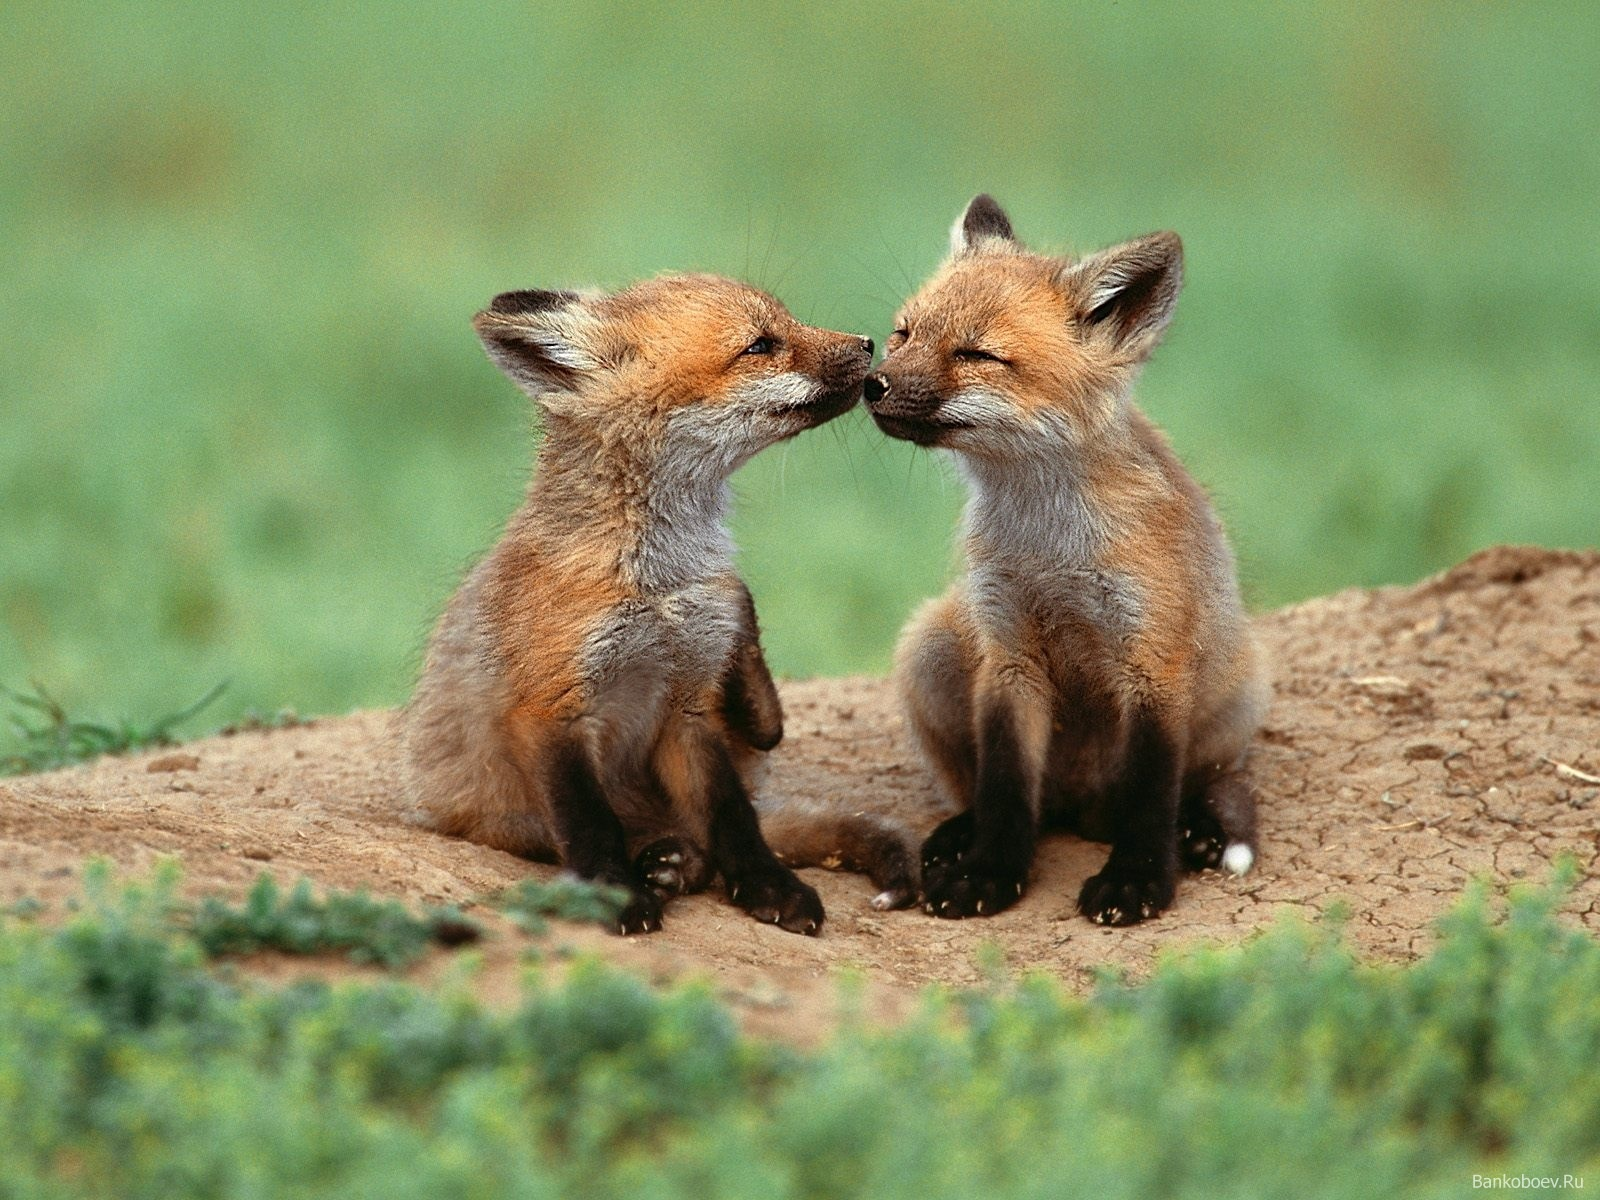 Cute Baby Fox Wallpaper Images Pictures   Becuo 1600x1200